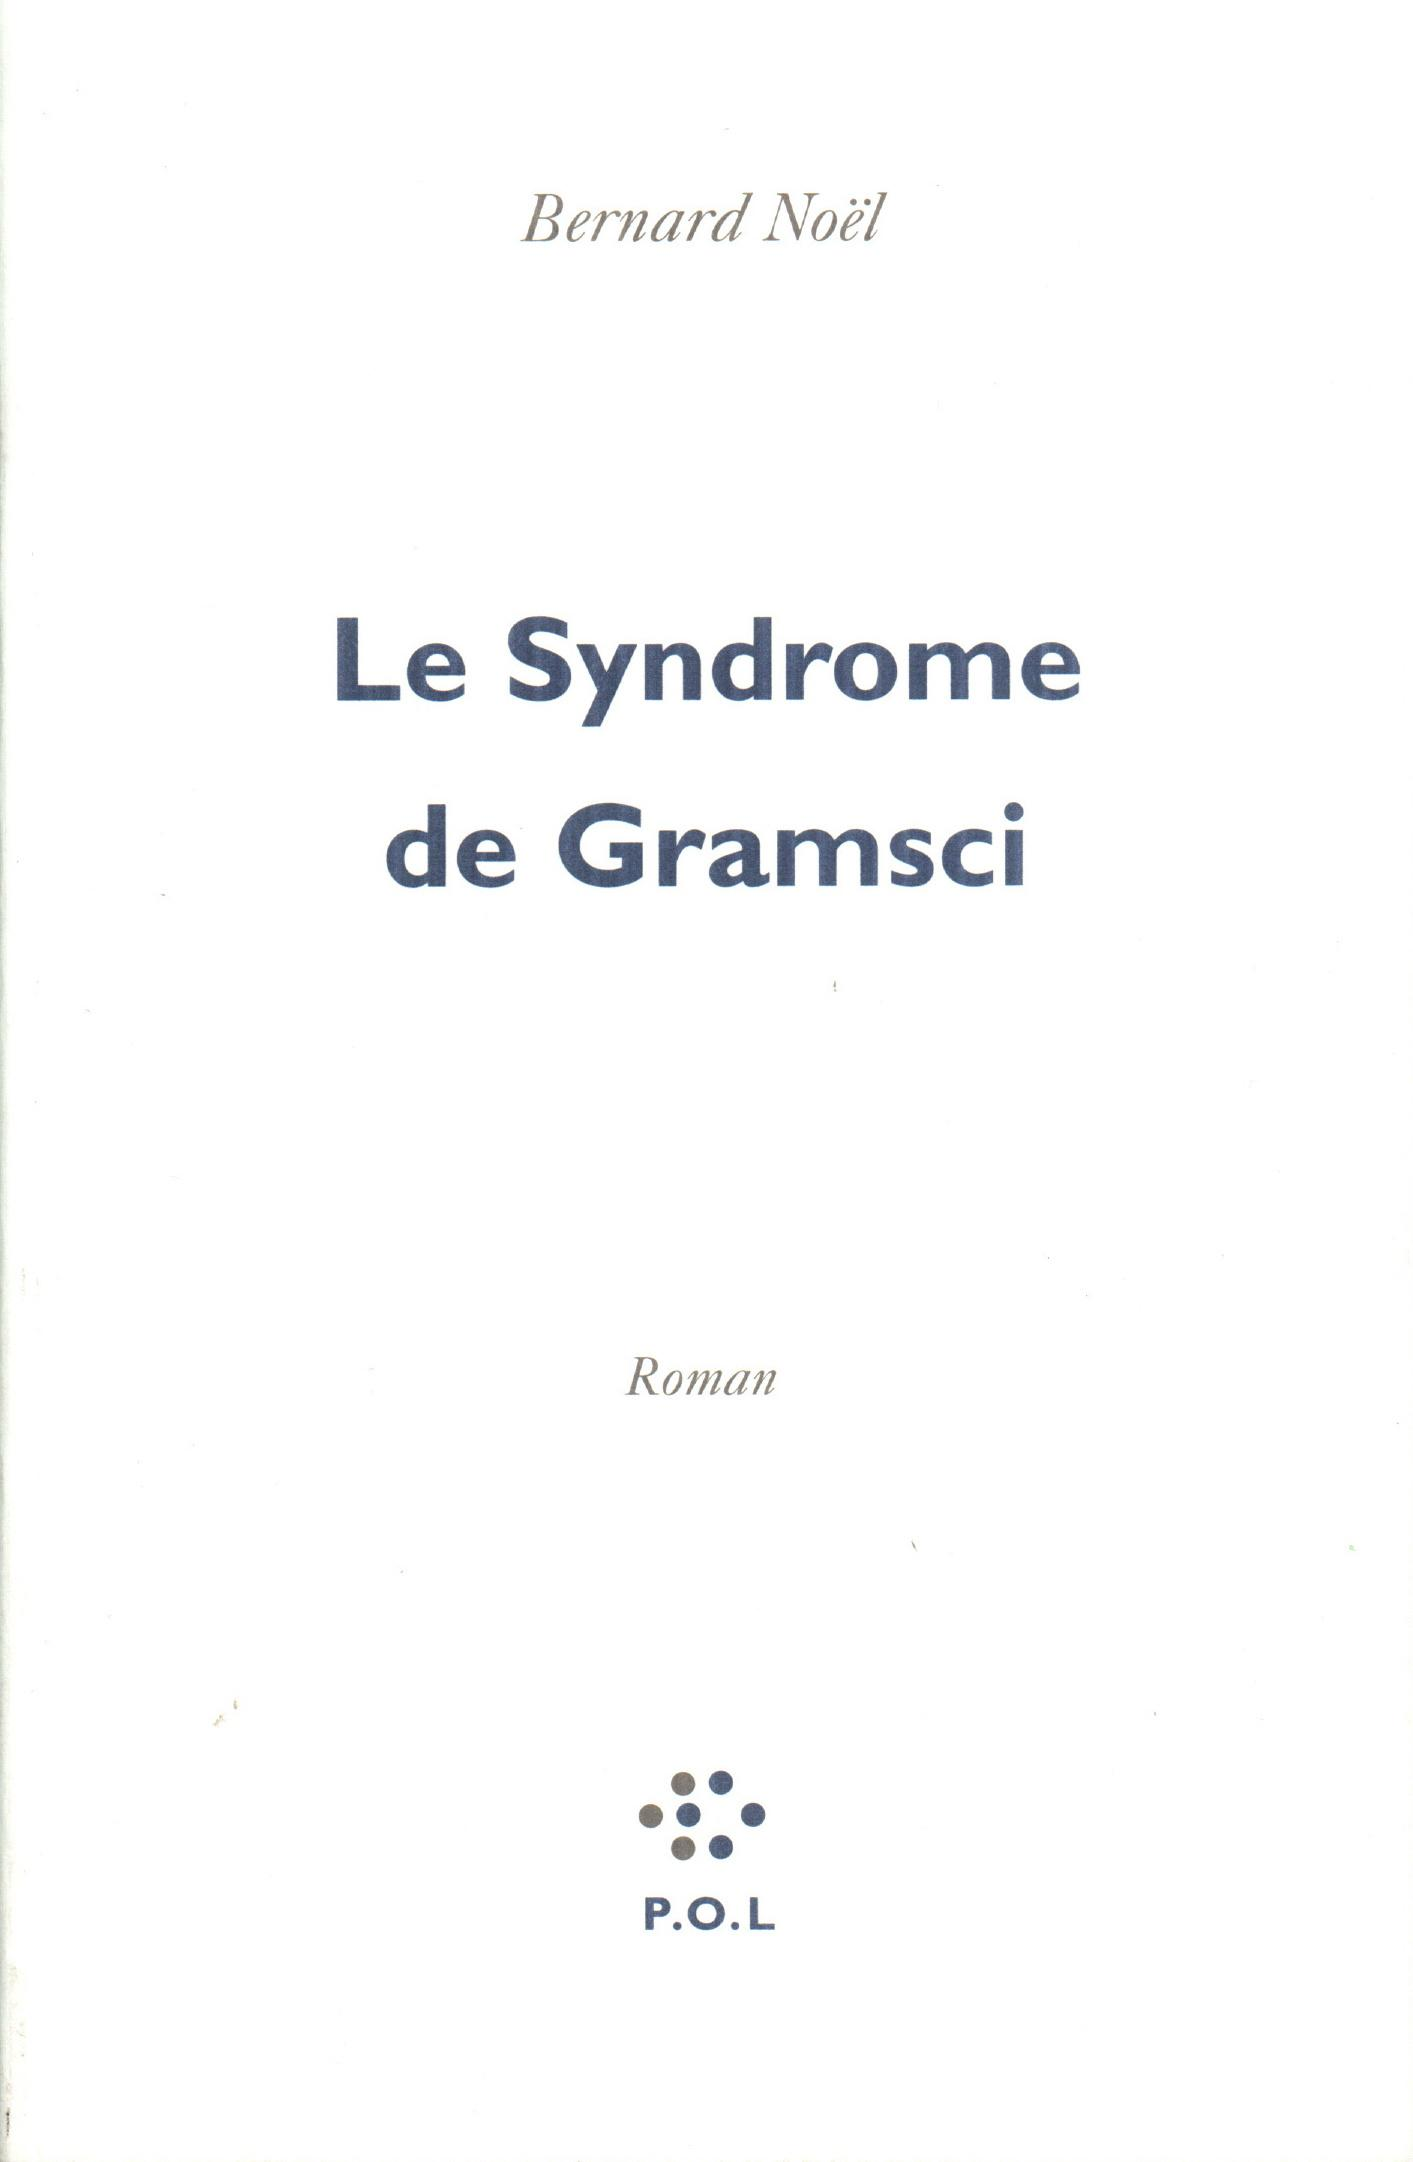 Le Syndrome de Gramsci